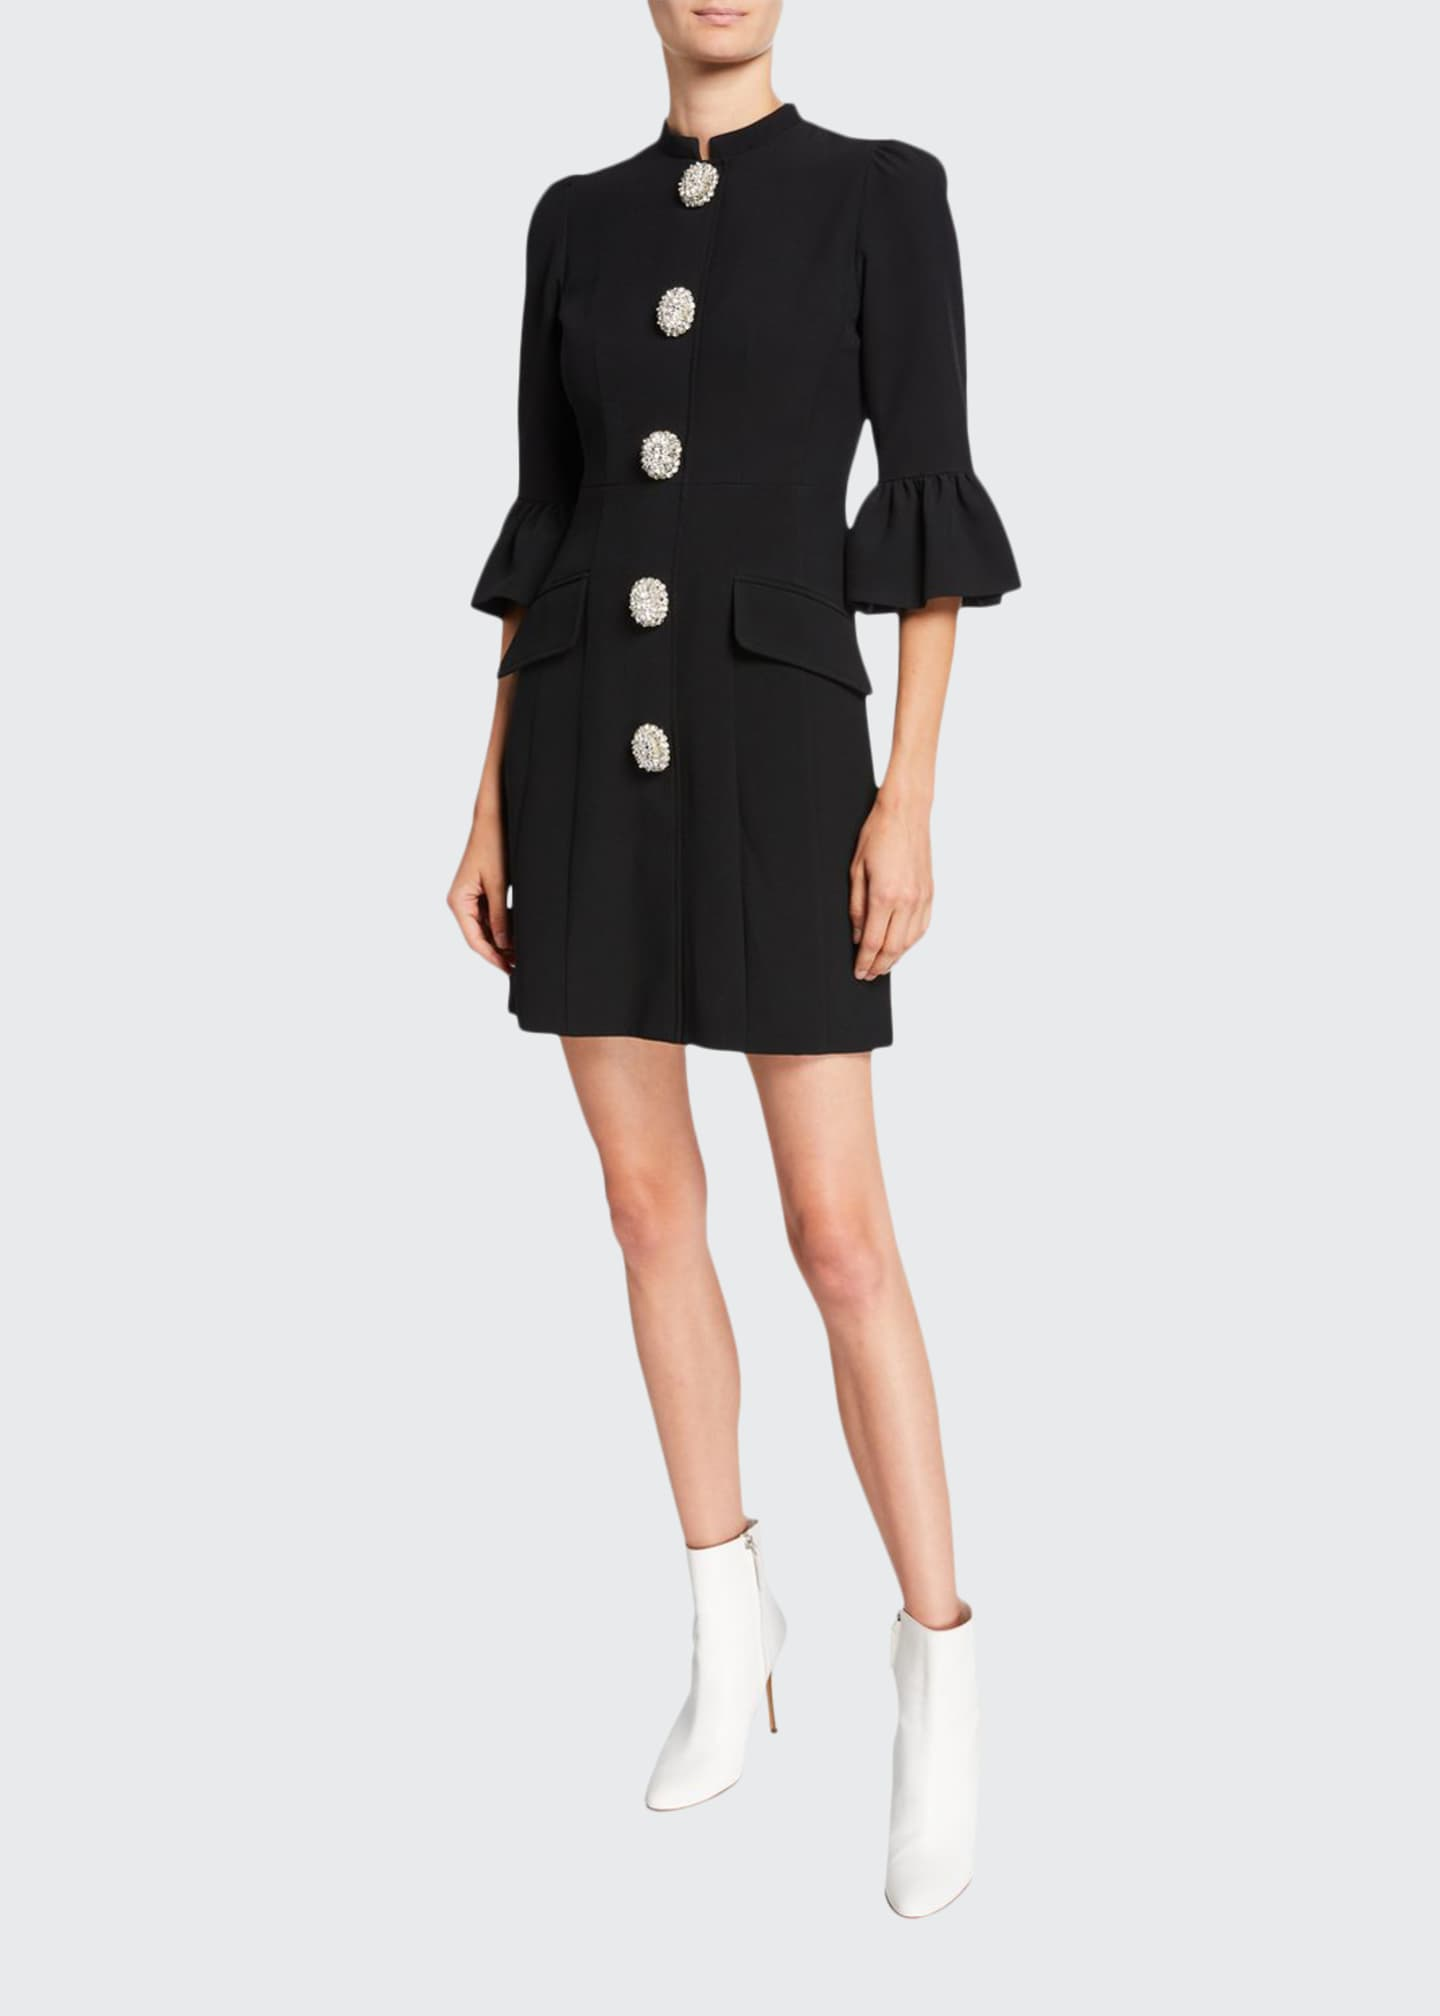 Andrew Gn 3/4-Sleeve Flared-Cuff A-Line Dress